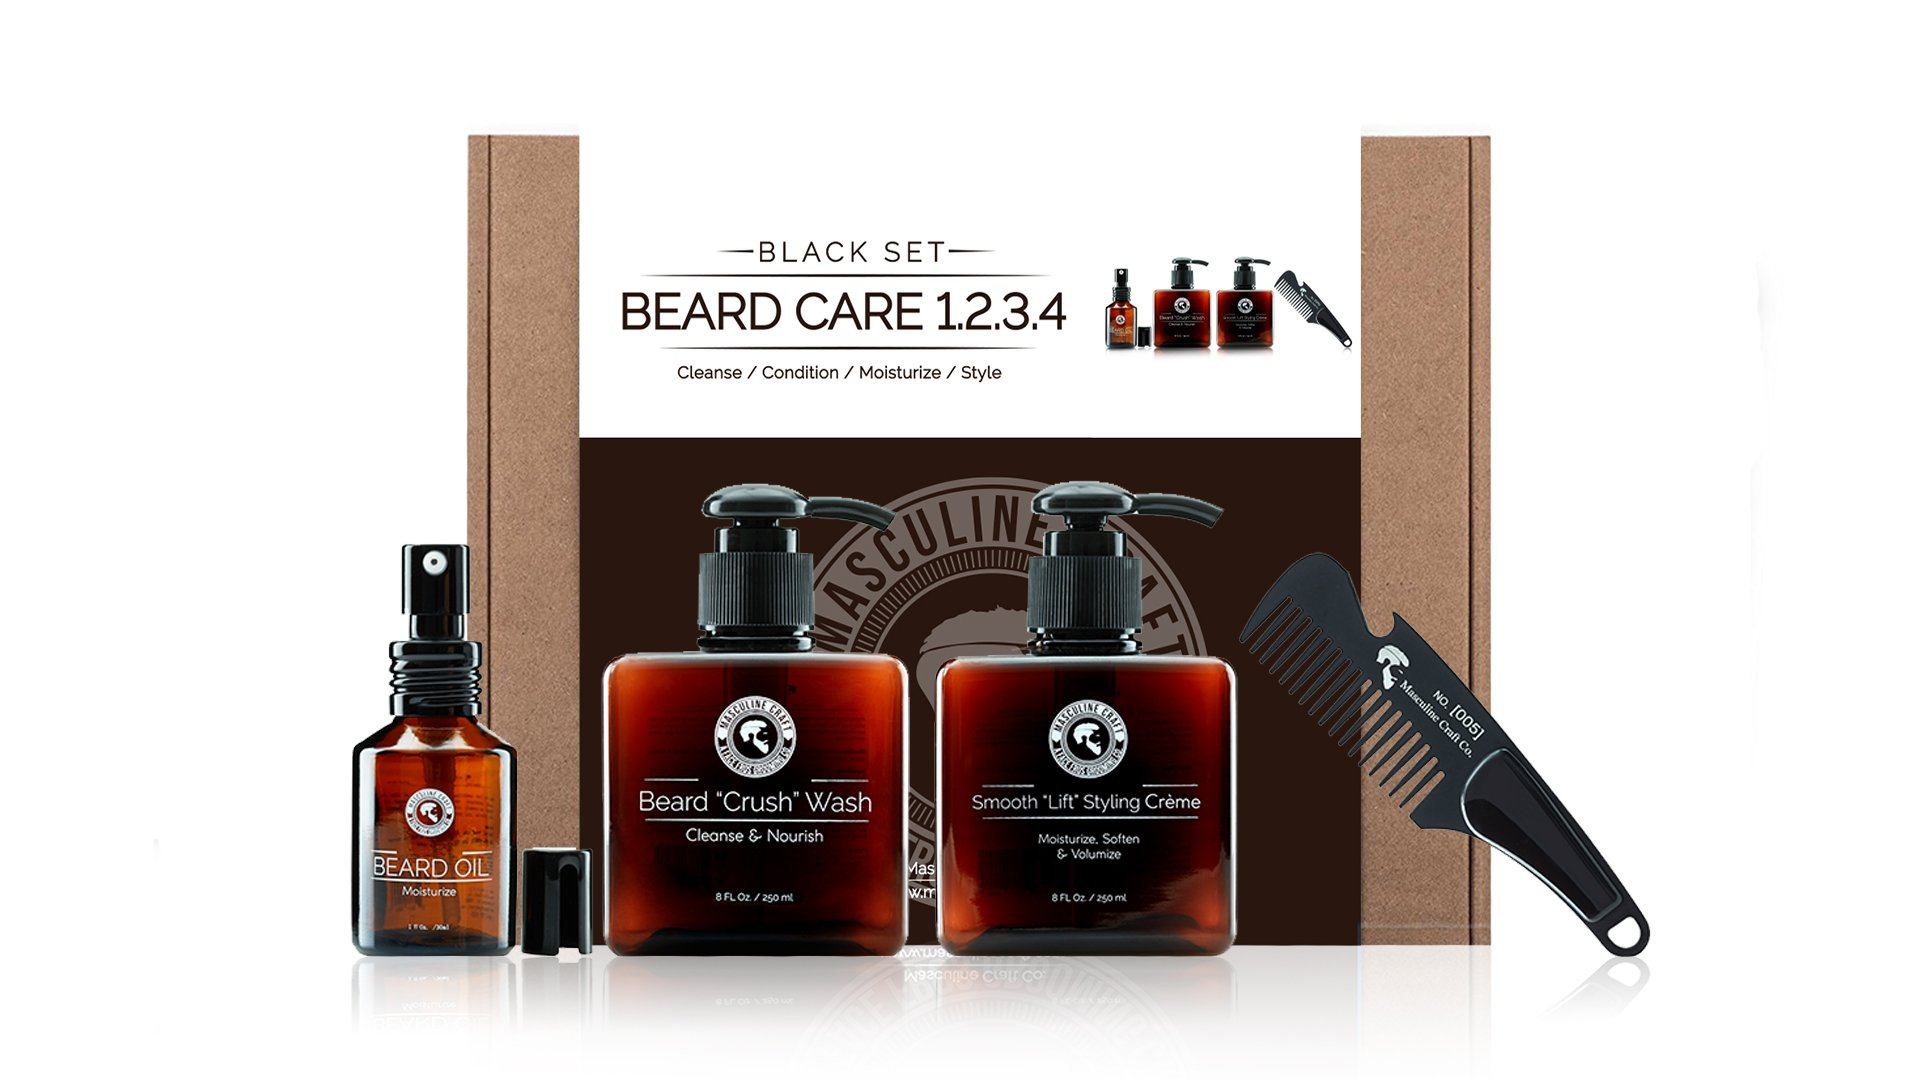 Masculine Craft Men's Beard Grooming Kit | Daily Beard Care Kit | Scented Black Beard Kit Includes Natural Beard Shampoo + Men's Beard Conditioner + Beard Oil Moisturizer + Stainless Steel Beard Comb